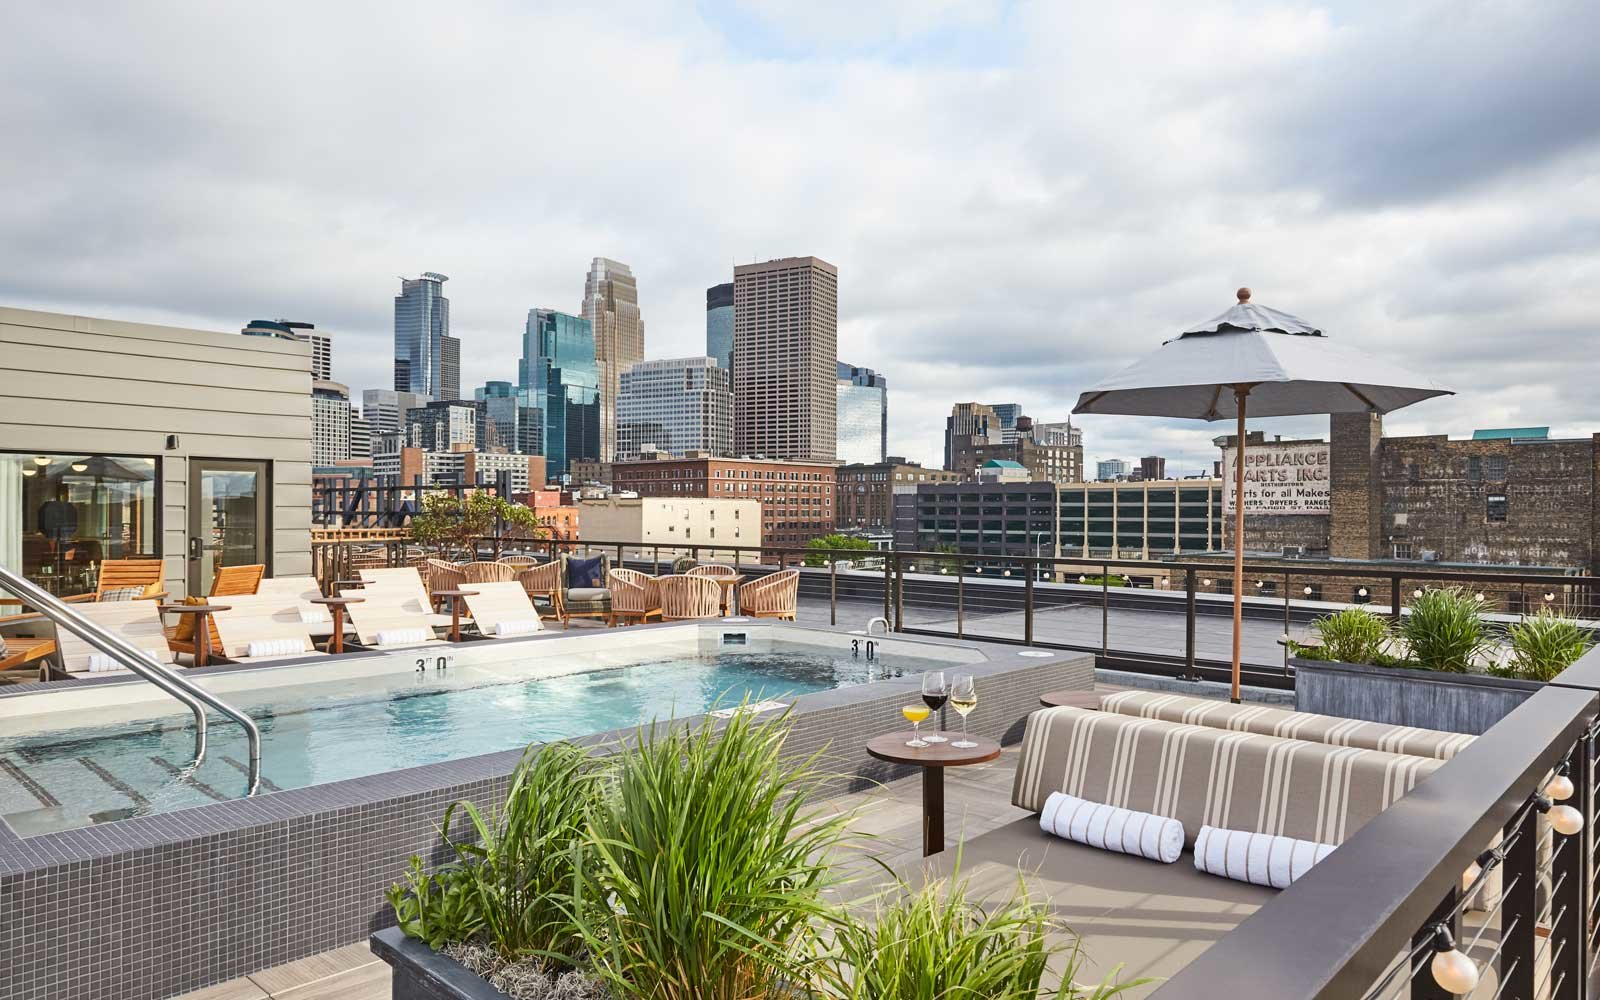 Rooftop pool at the Hewing Hotel